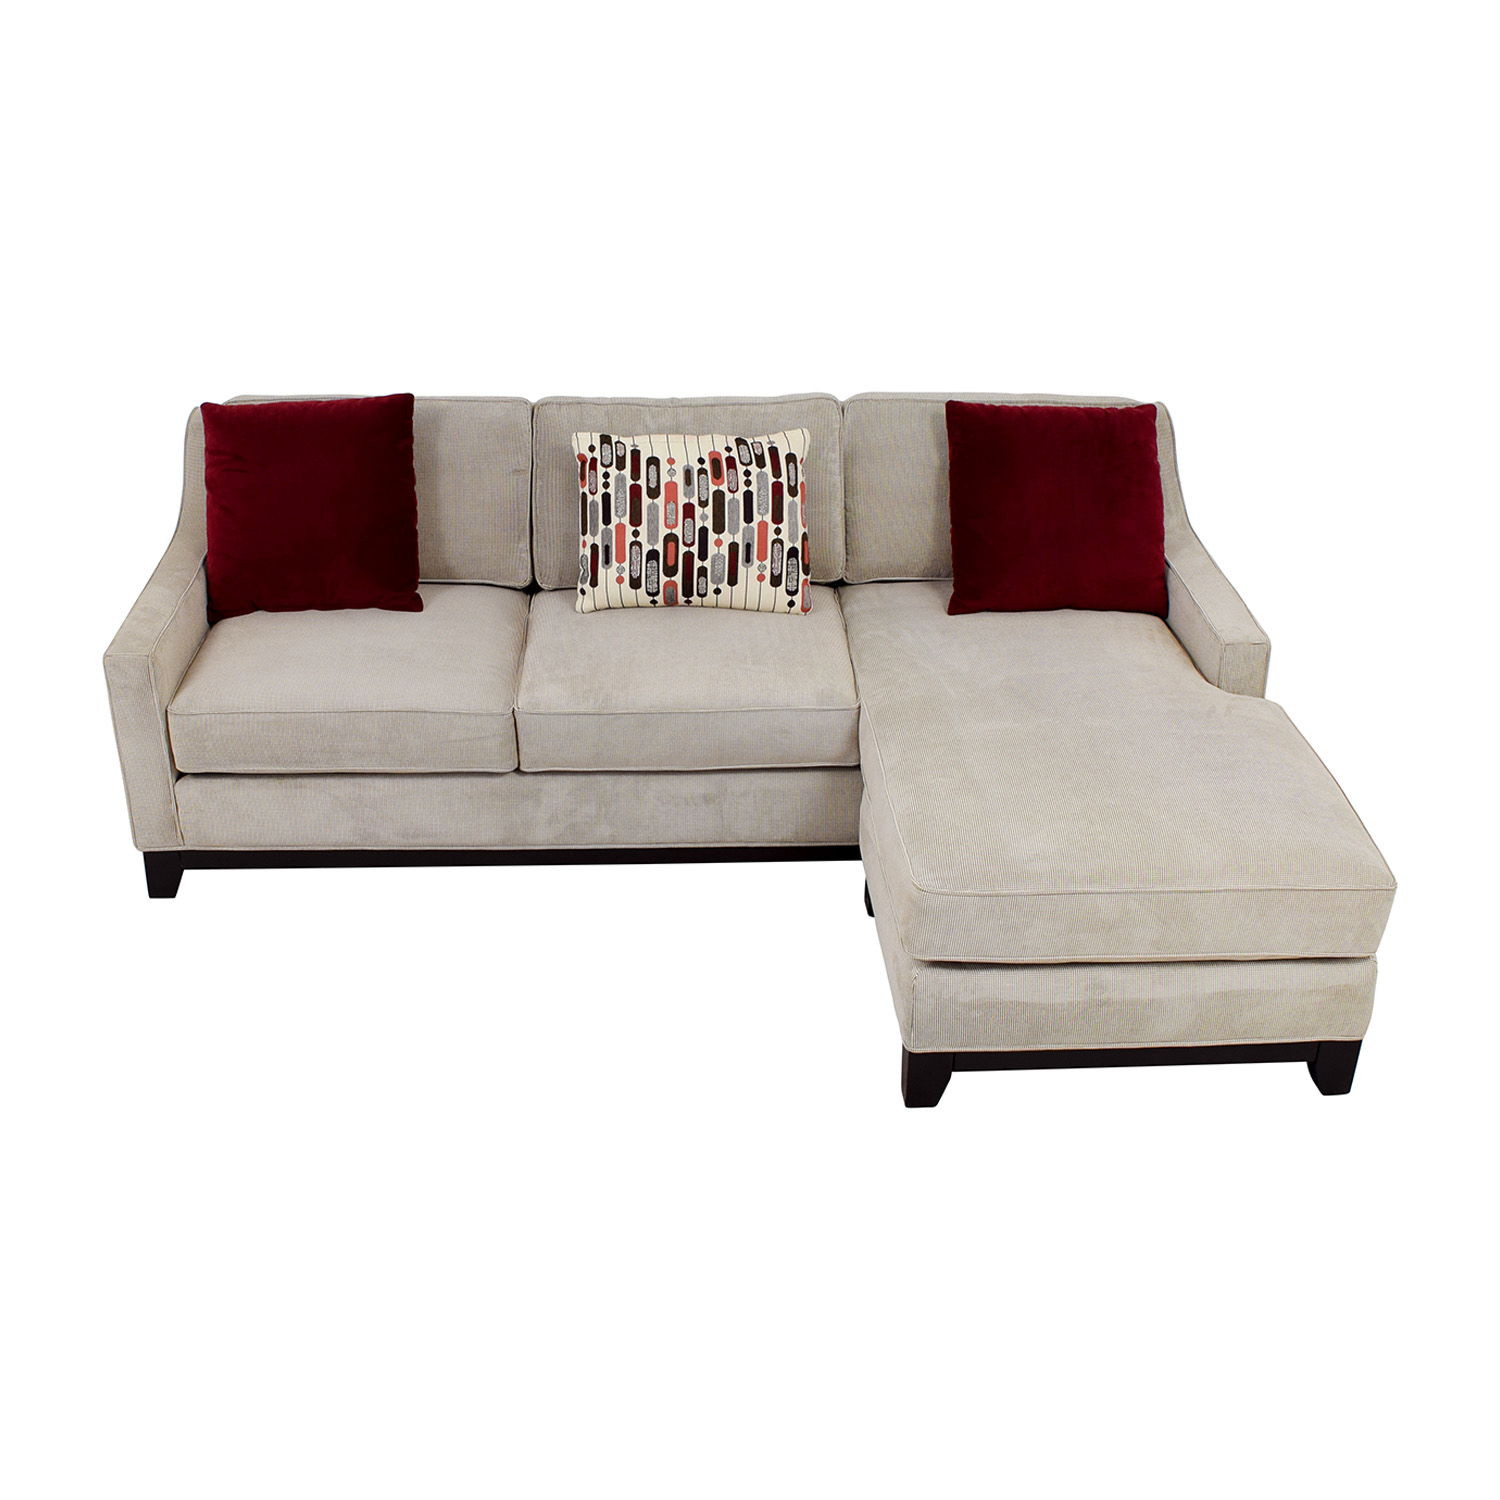 Kerridon Collection Kerridon Collection Grey Tweed Chaise Sectional